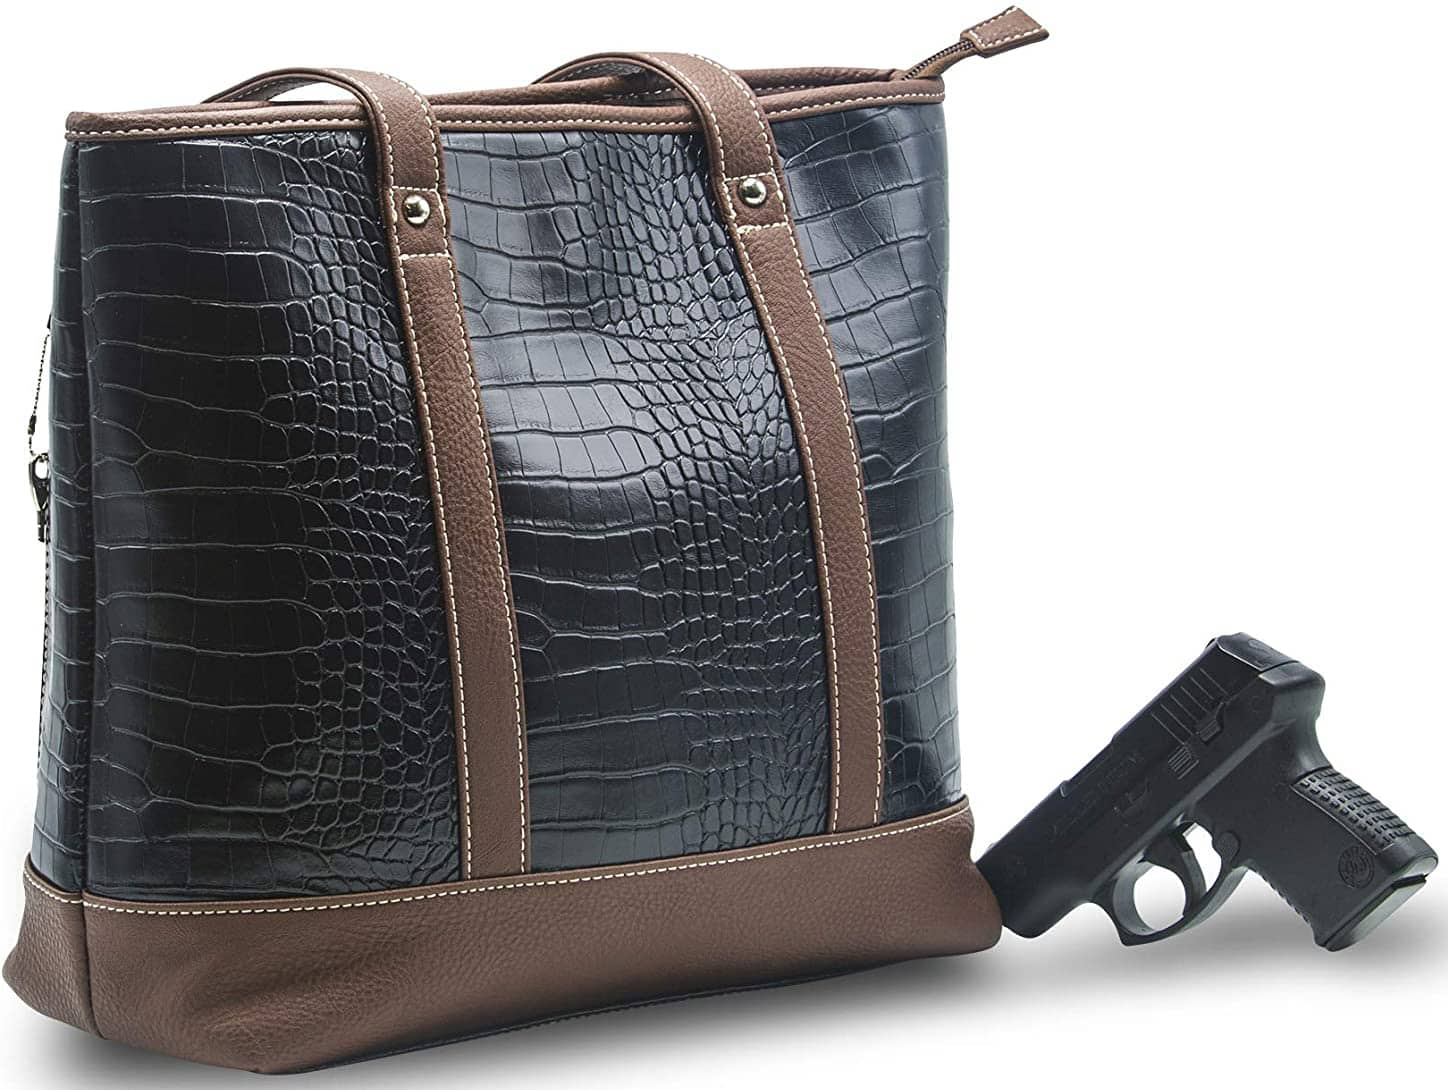 The Goson concealed carry is designed to keep you and your weapon safe with its multiple special pockets